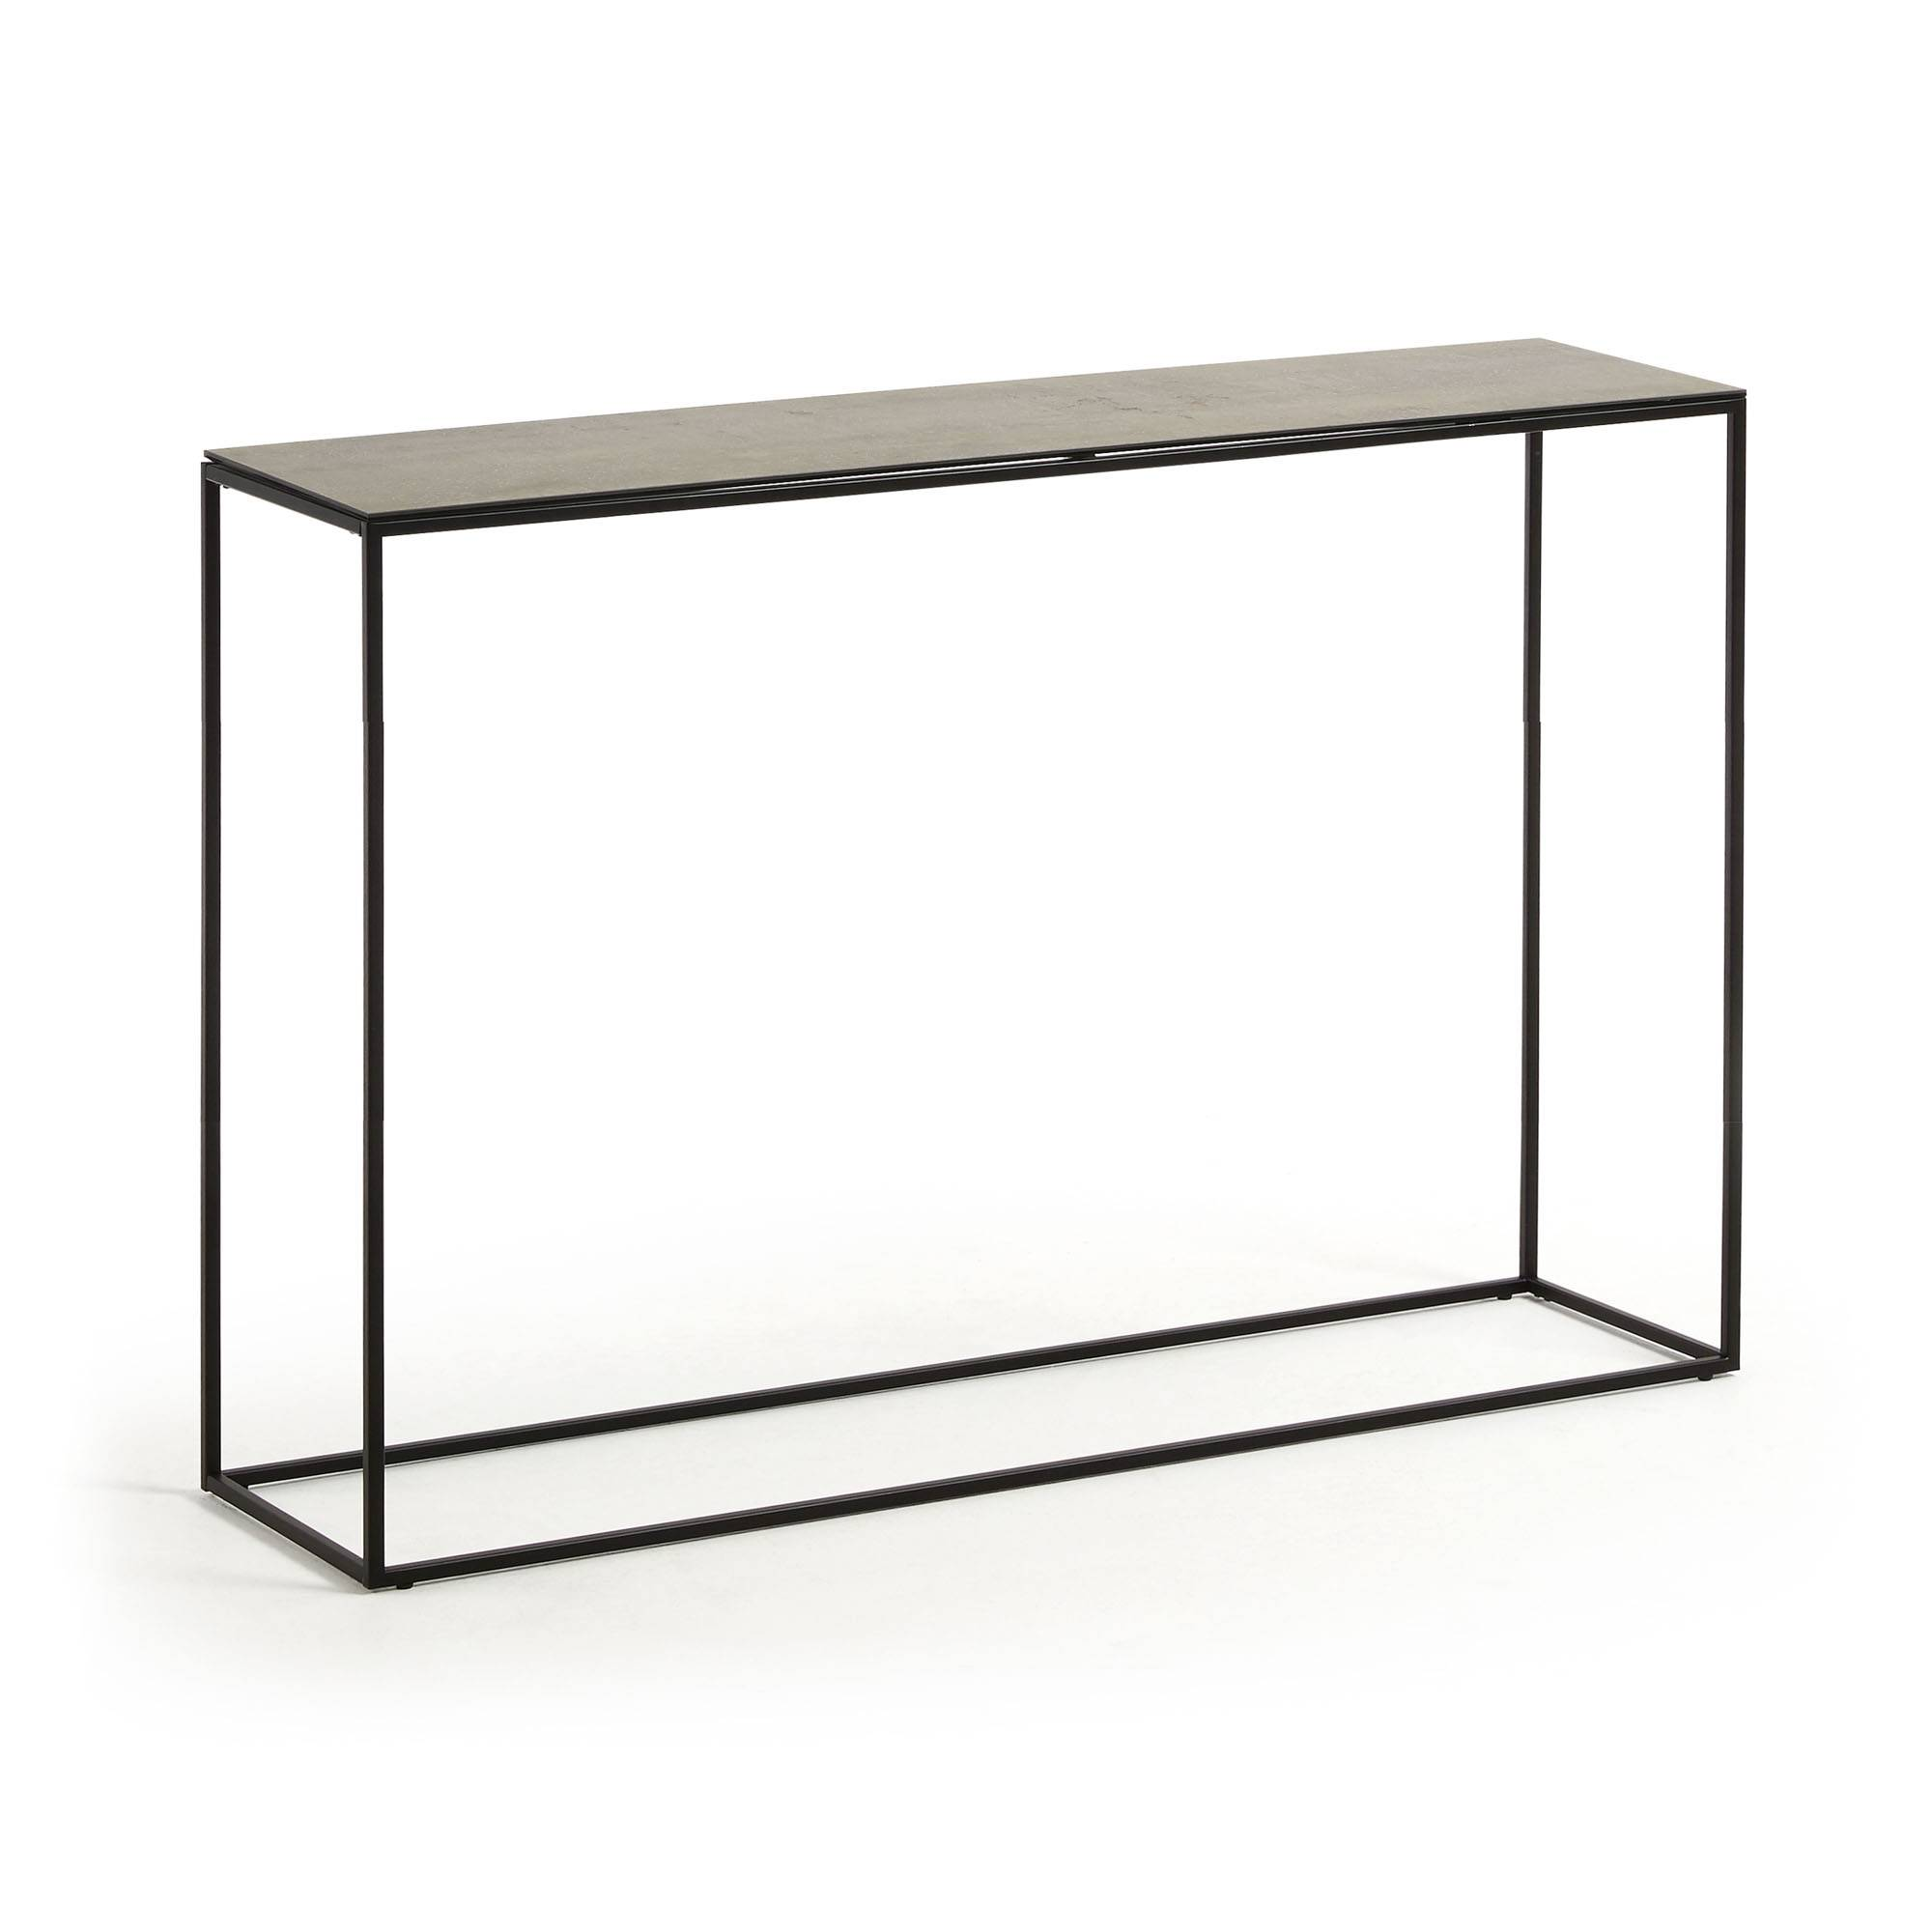 Kave Home Consolle Rewena 110 x 75 cm